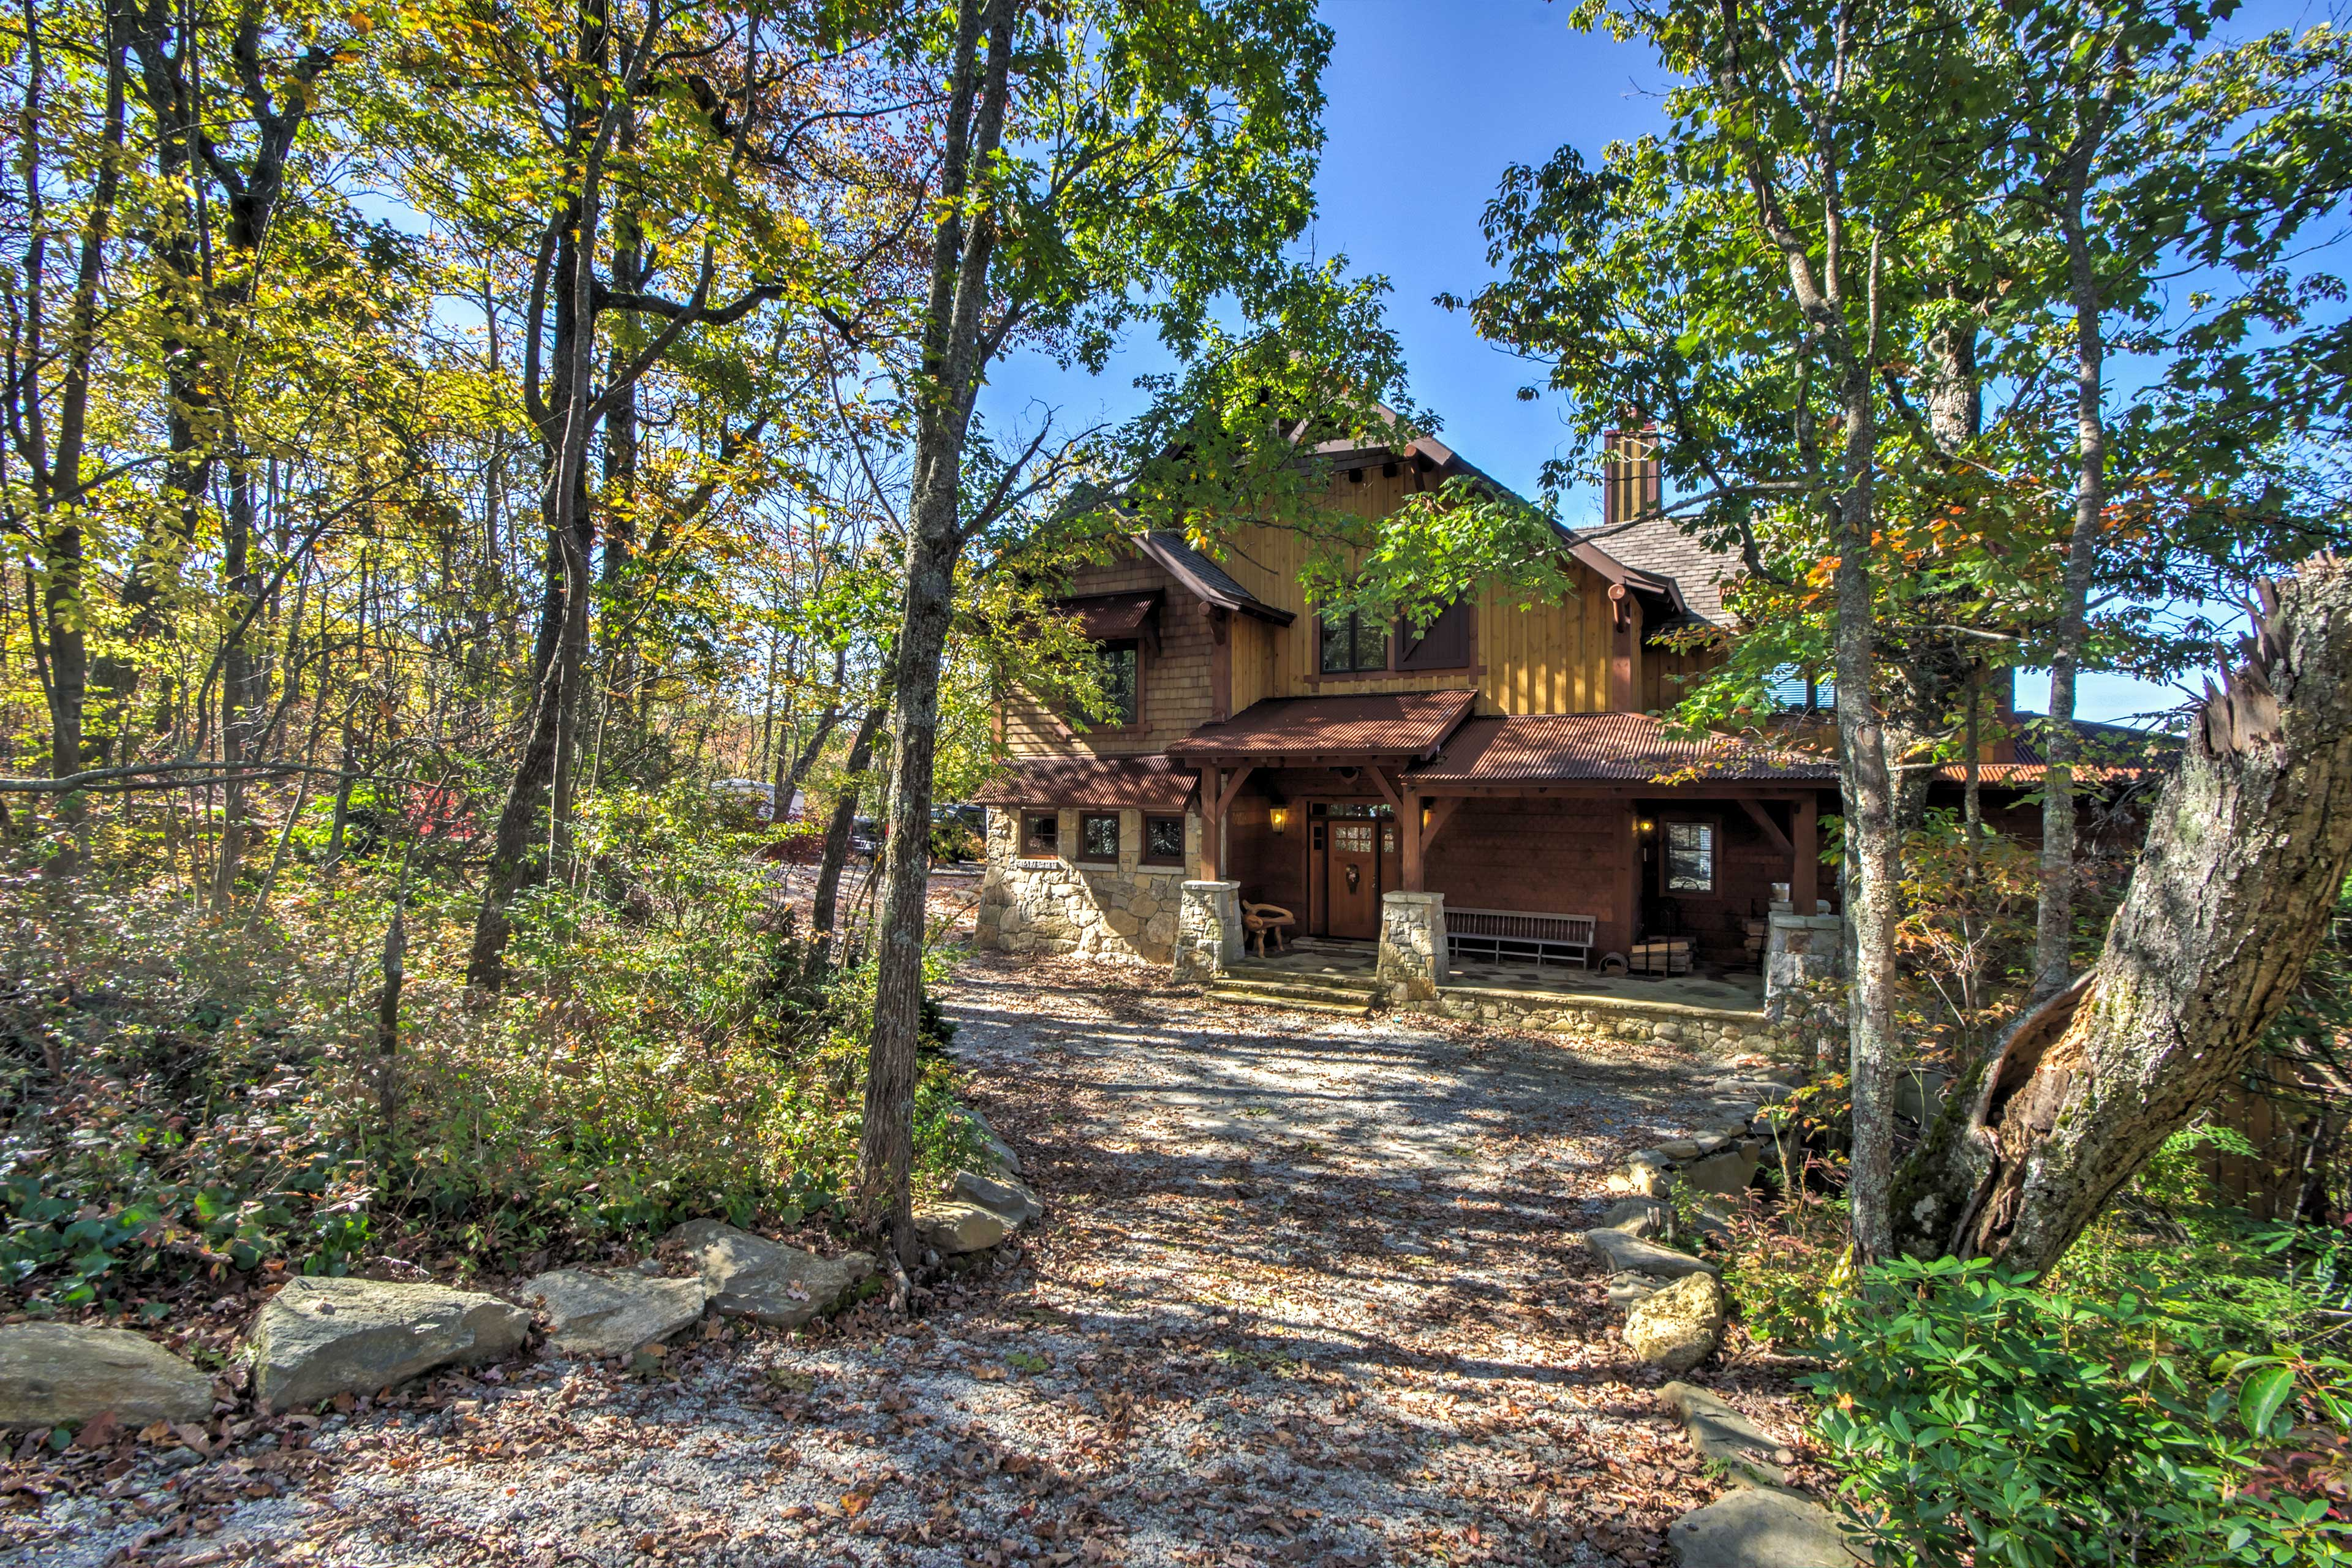 This home is situated in a picturesque setting.